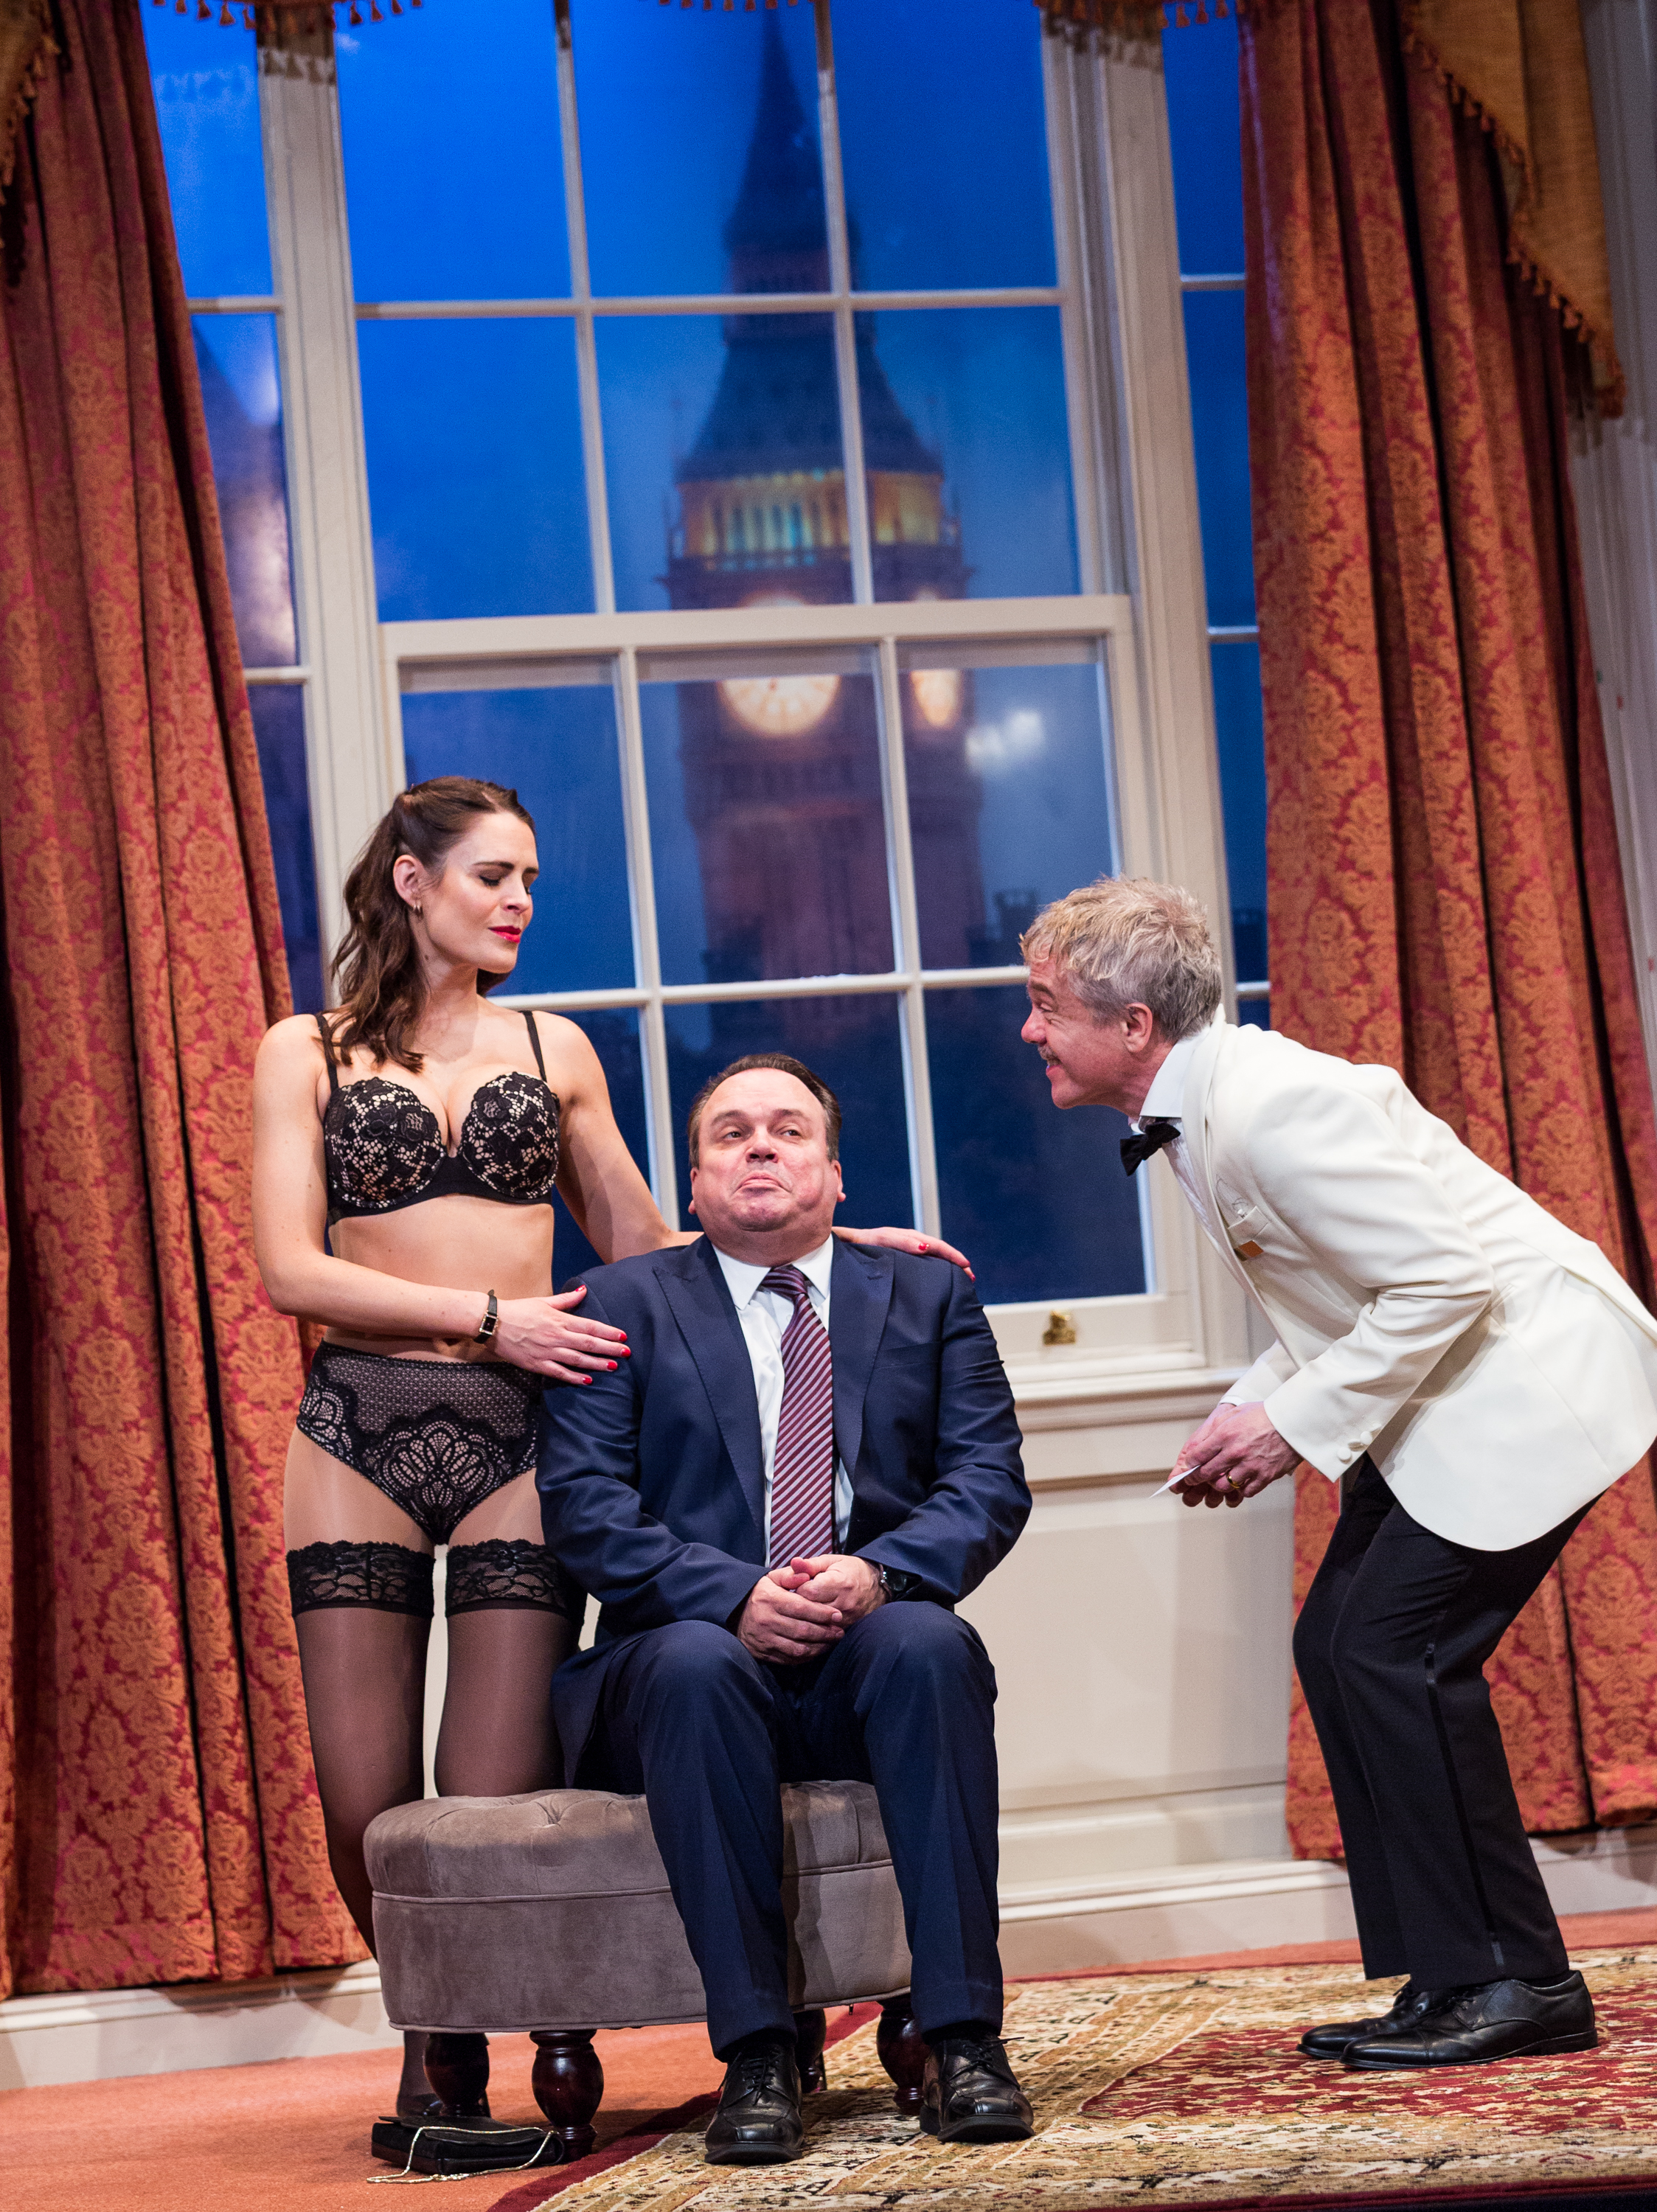 Jane Worthington (Susie Amy), George Pigden (Shaun Williamson) & The Waiter (James Holmes).jpg